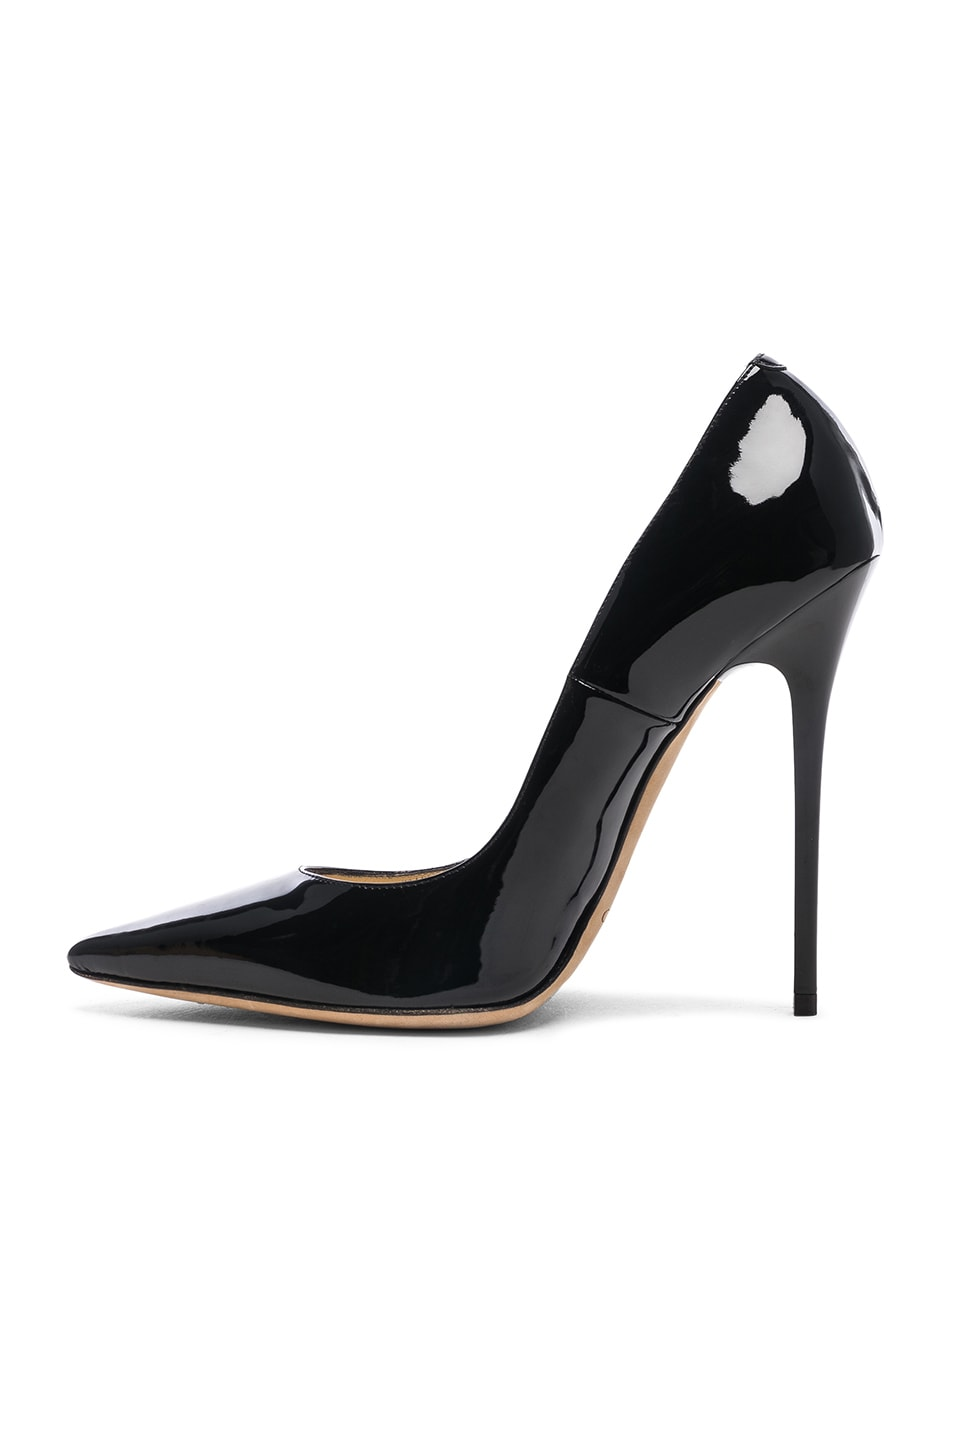 Image 5 of Jimmy Choo Anouk 120 Patent Leather Pump in Black